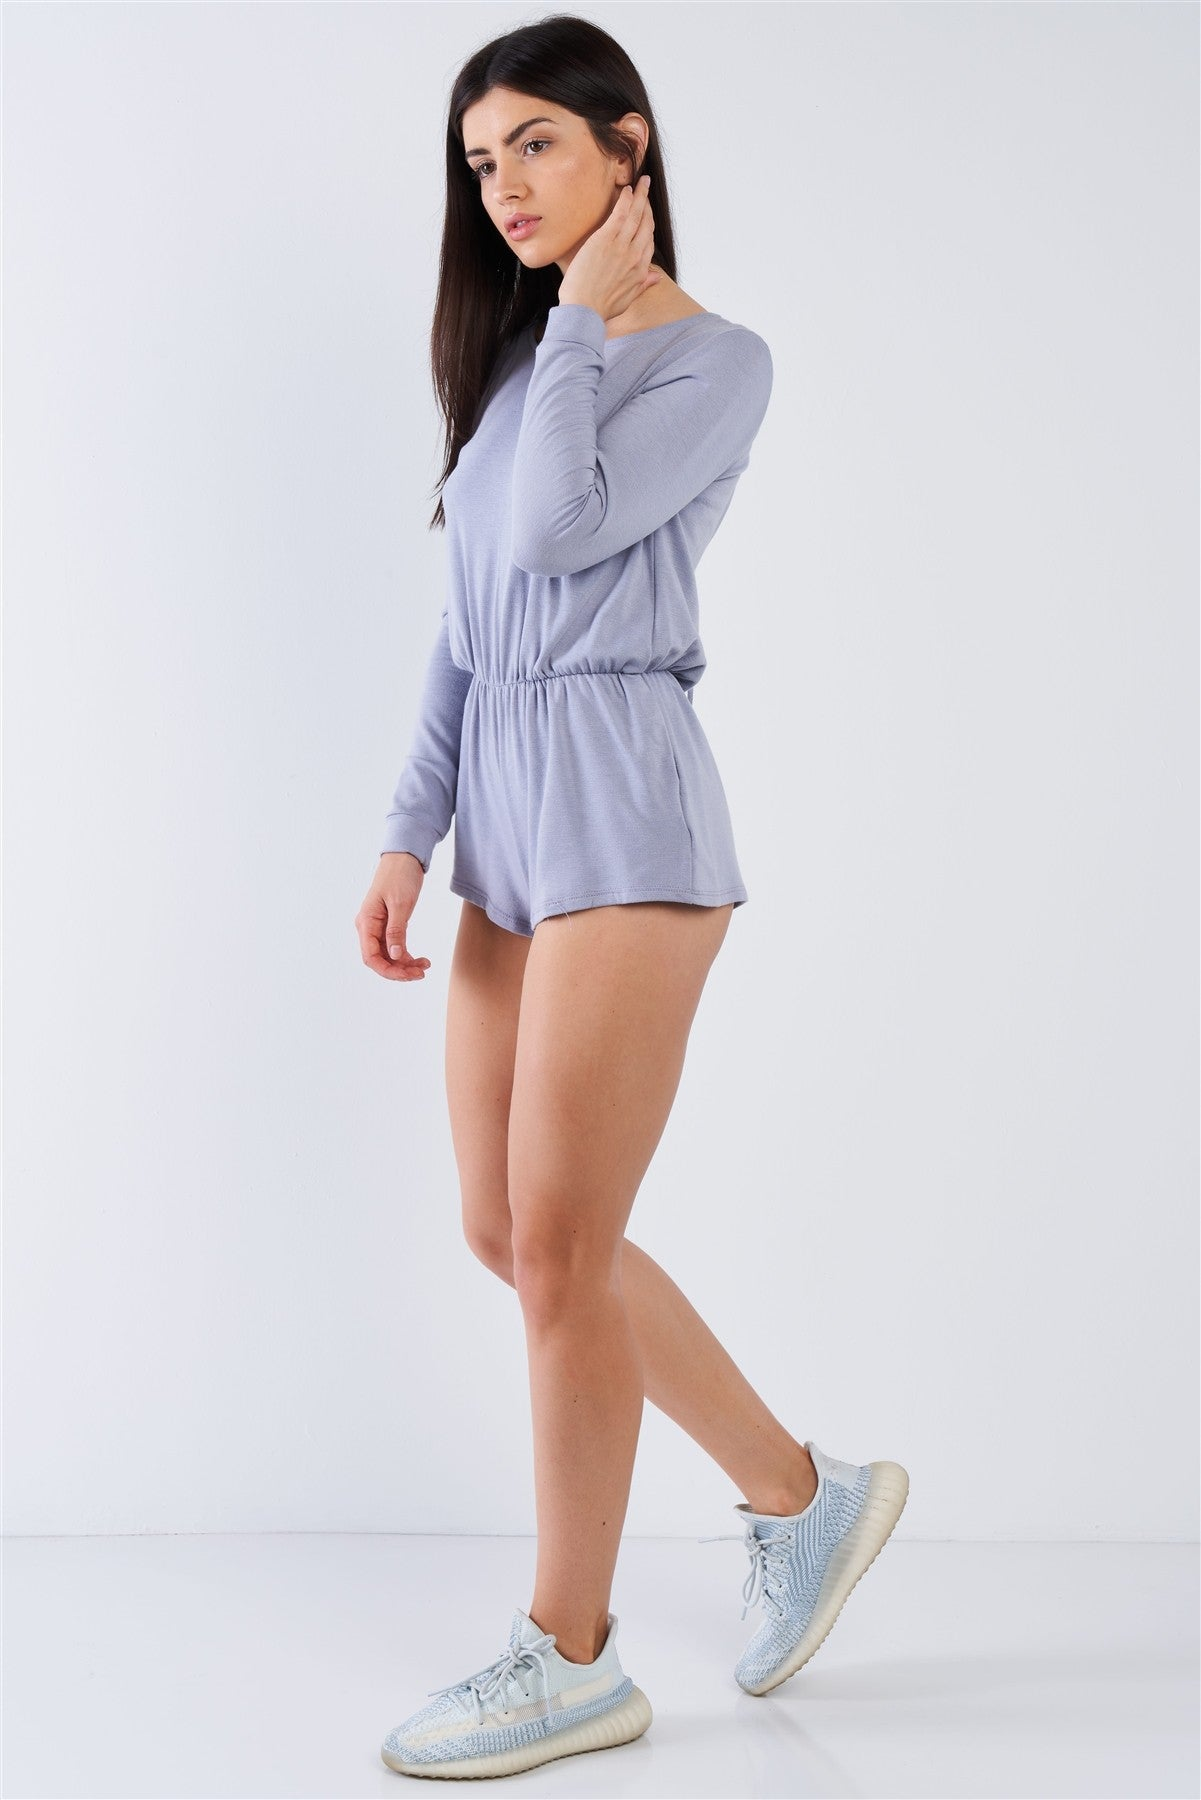 slaythedaybydcole,Comfy Tie-back Long Sleeve Romper,Slay The Day By D Cole,